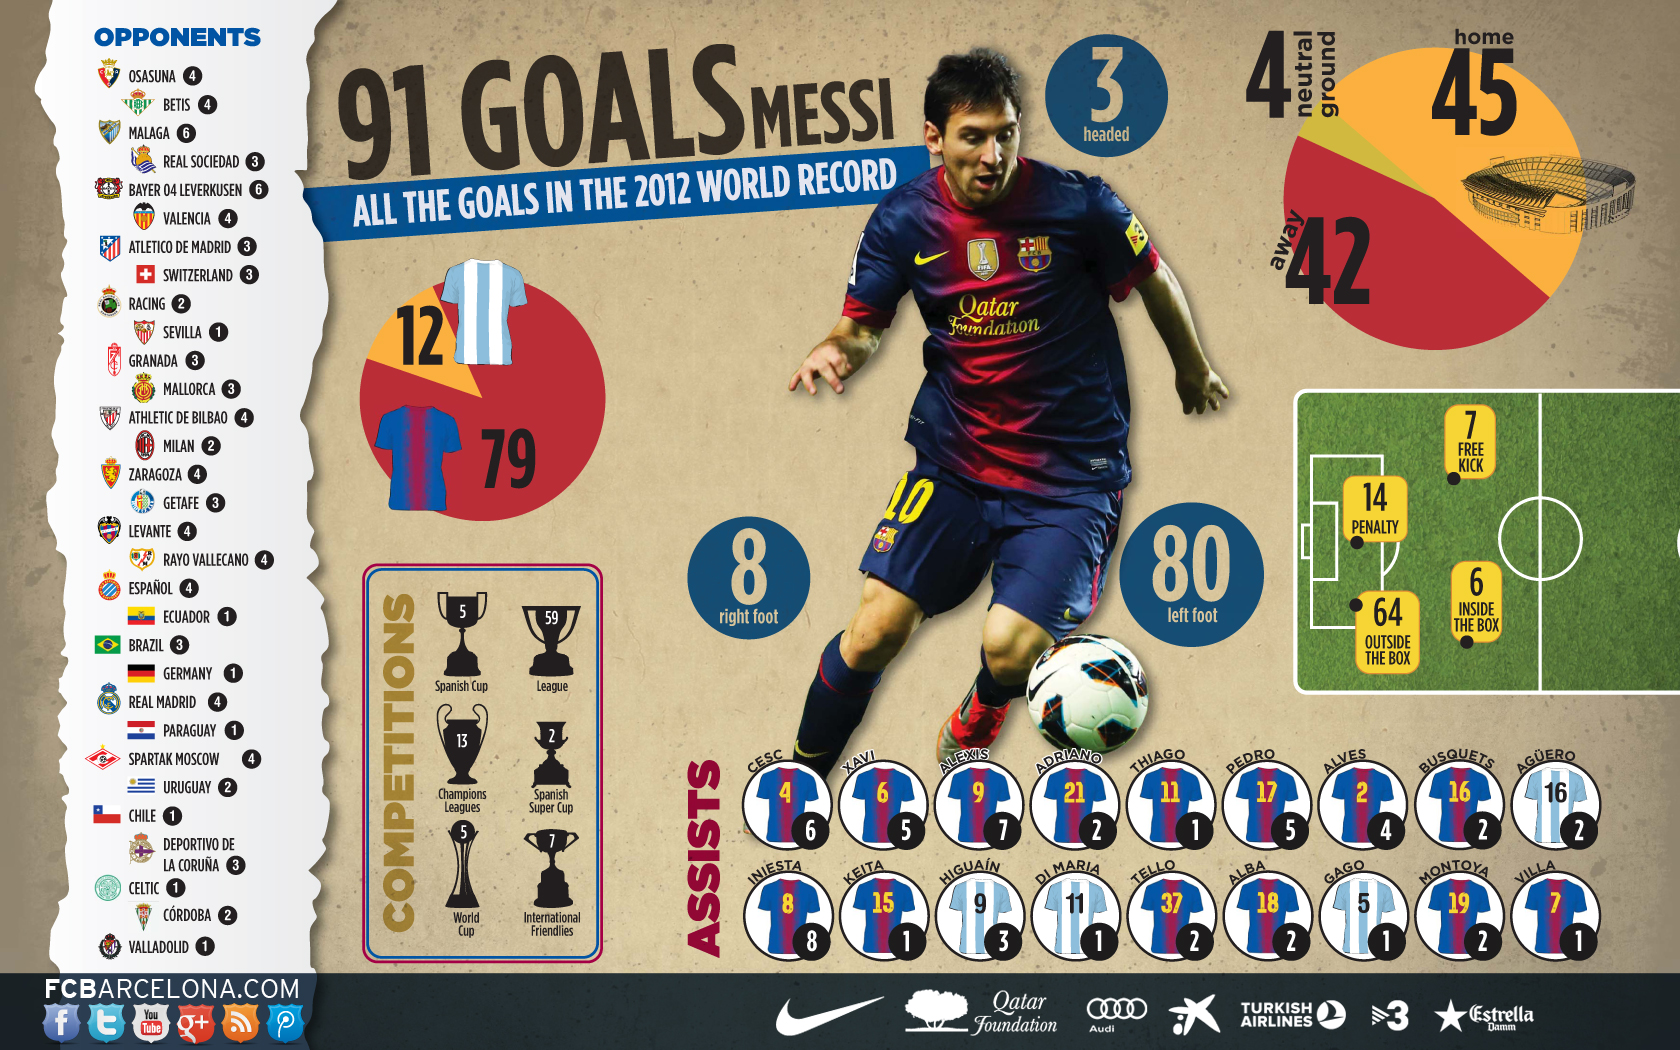 http://media4.fcbarcelona.com/media/asset_publics/resources/000/038/214/original/91_gols_messi_eng.v1356695803.jpg